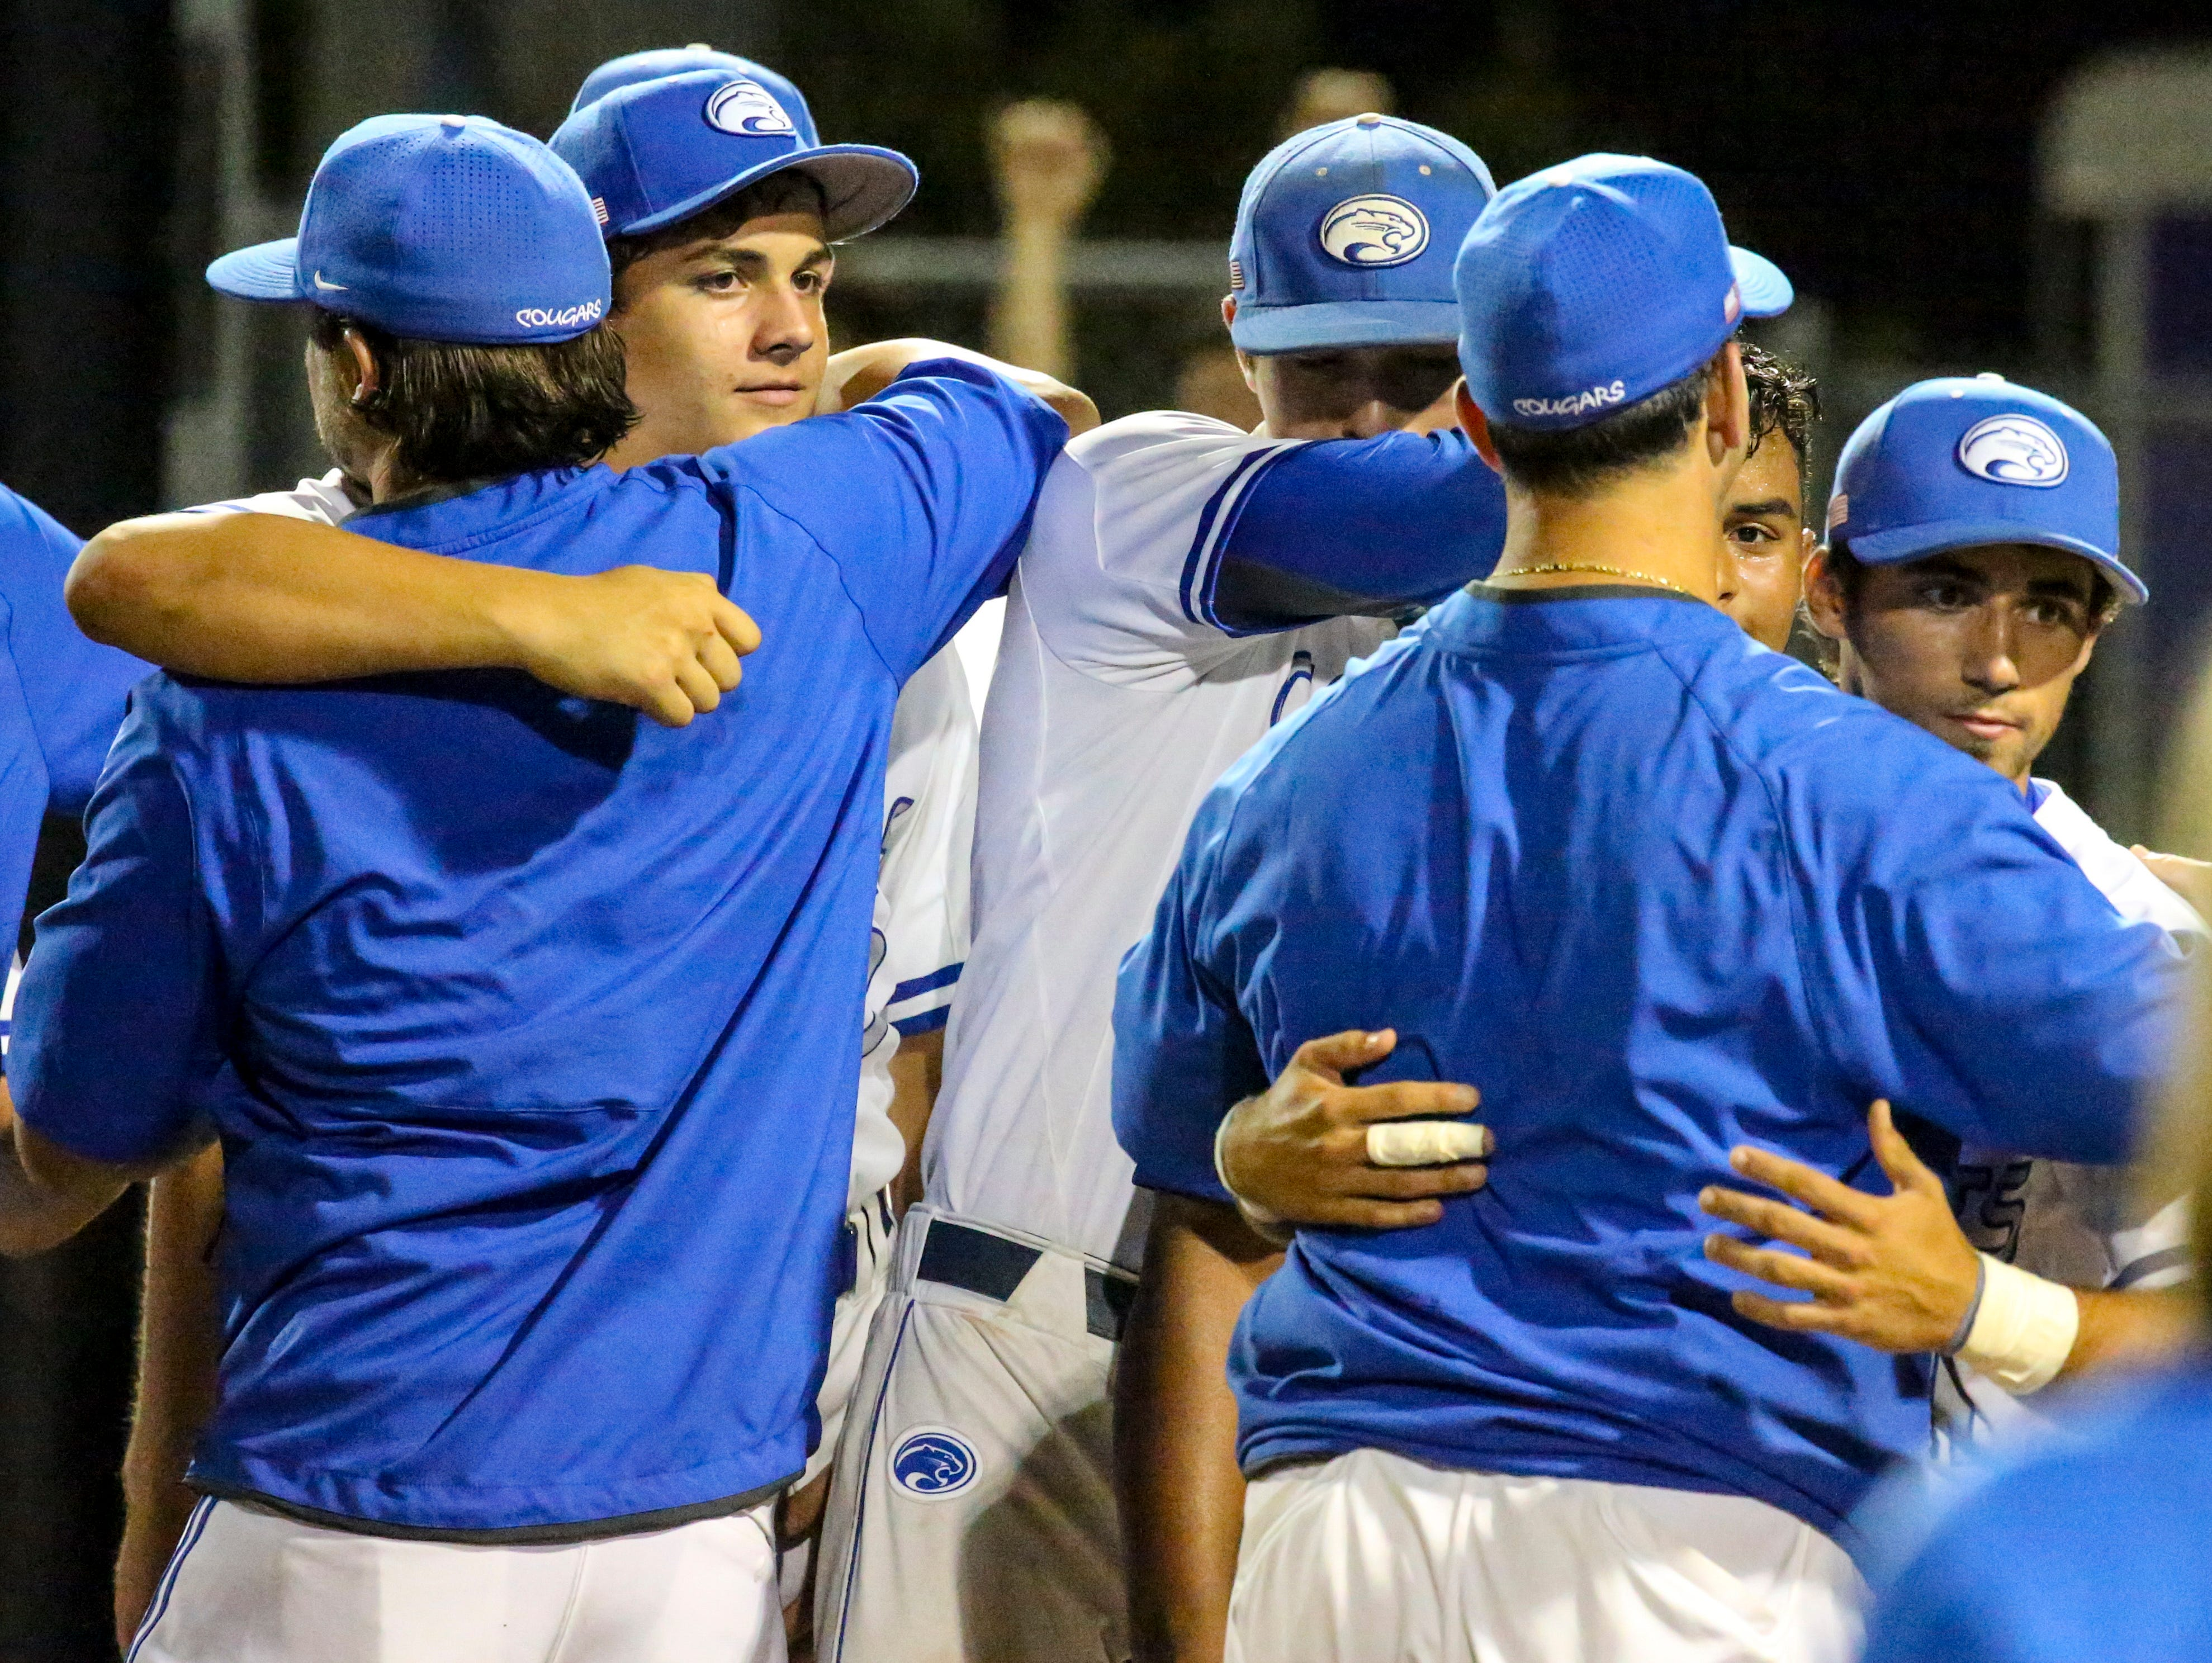 Region 3A-3 semifinal baseball between Canterbury and Sarasota Out of Door Academy. Canterbury won 2-0 to advance and the team celebrates their win.